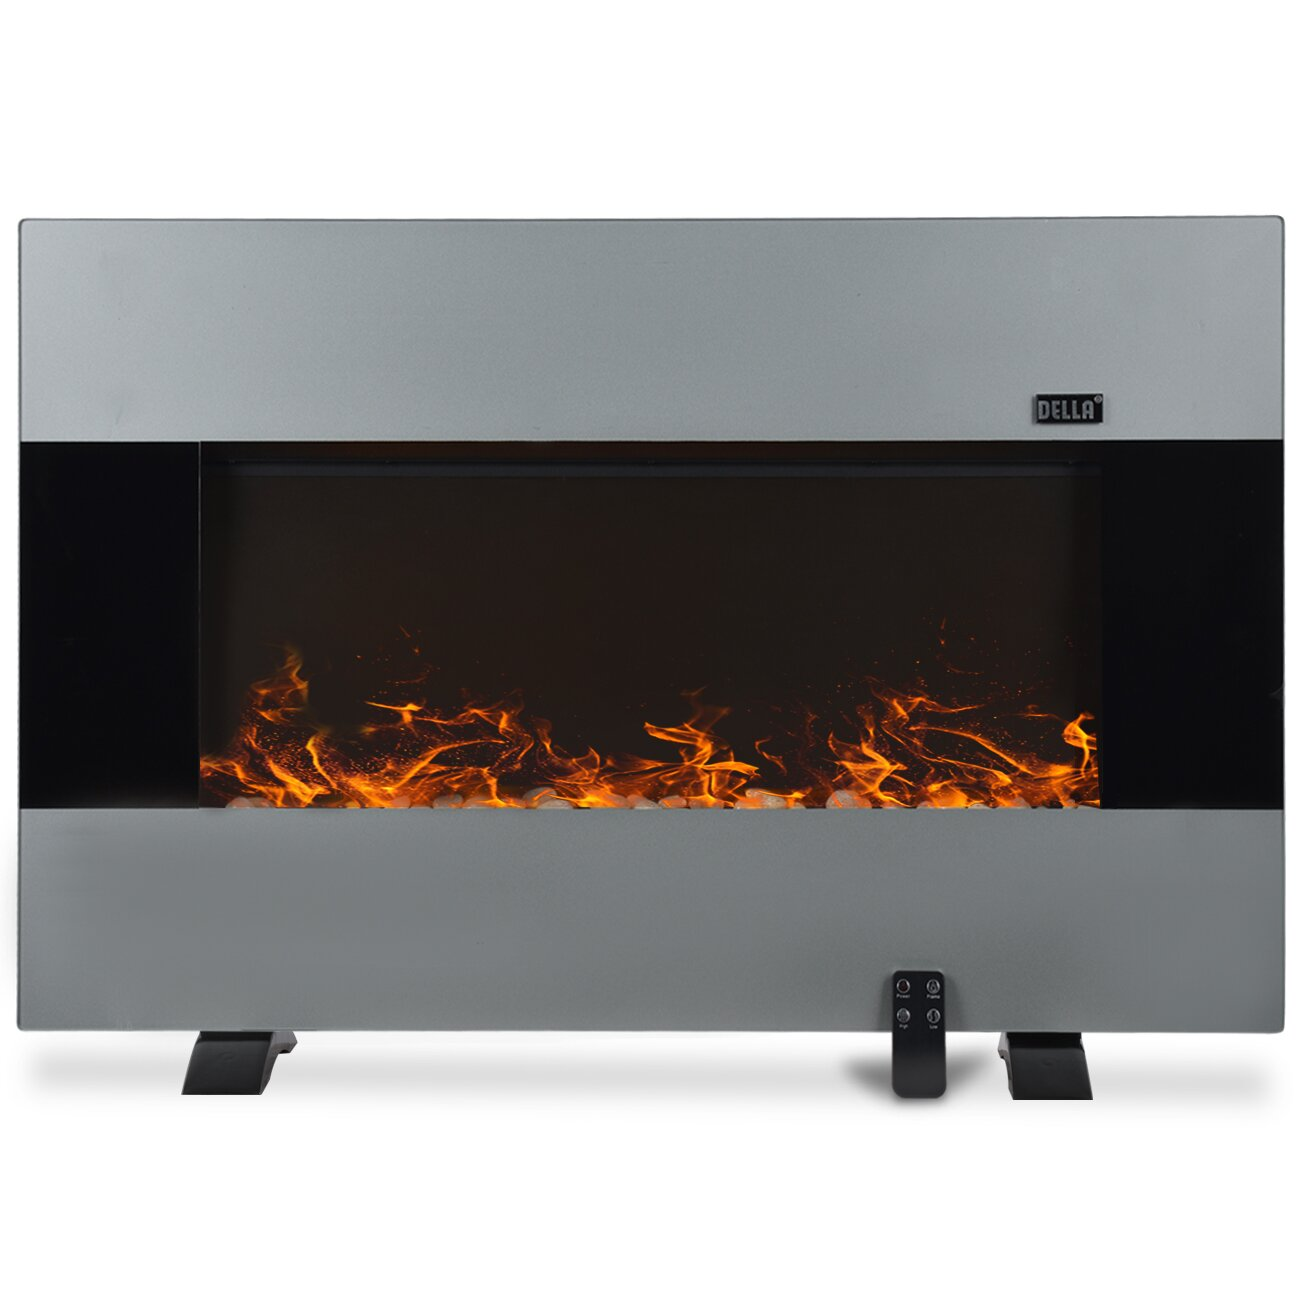 Natural gas wall mount fireplaces - 1500w Wall Mount Electric Fireplace